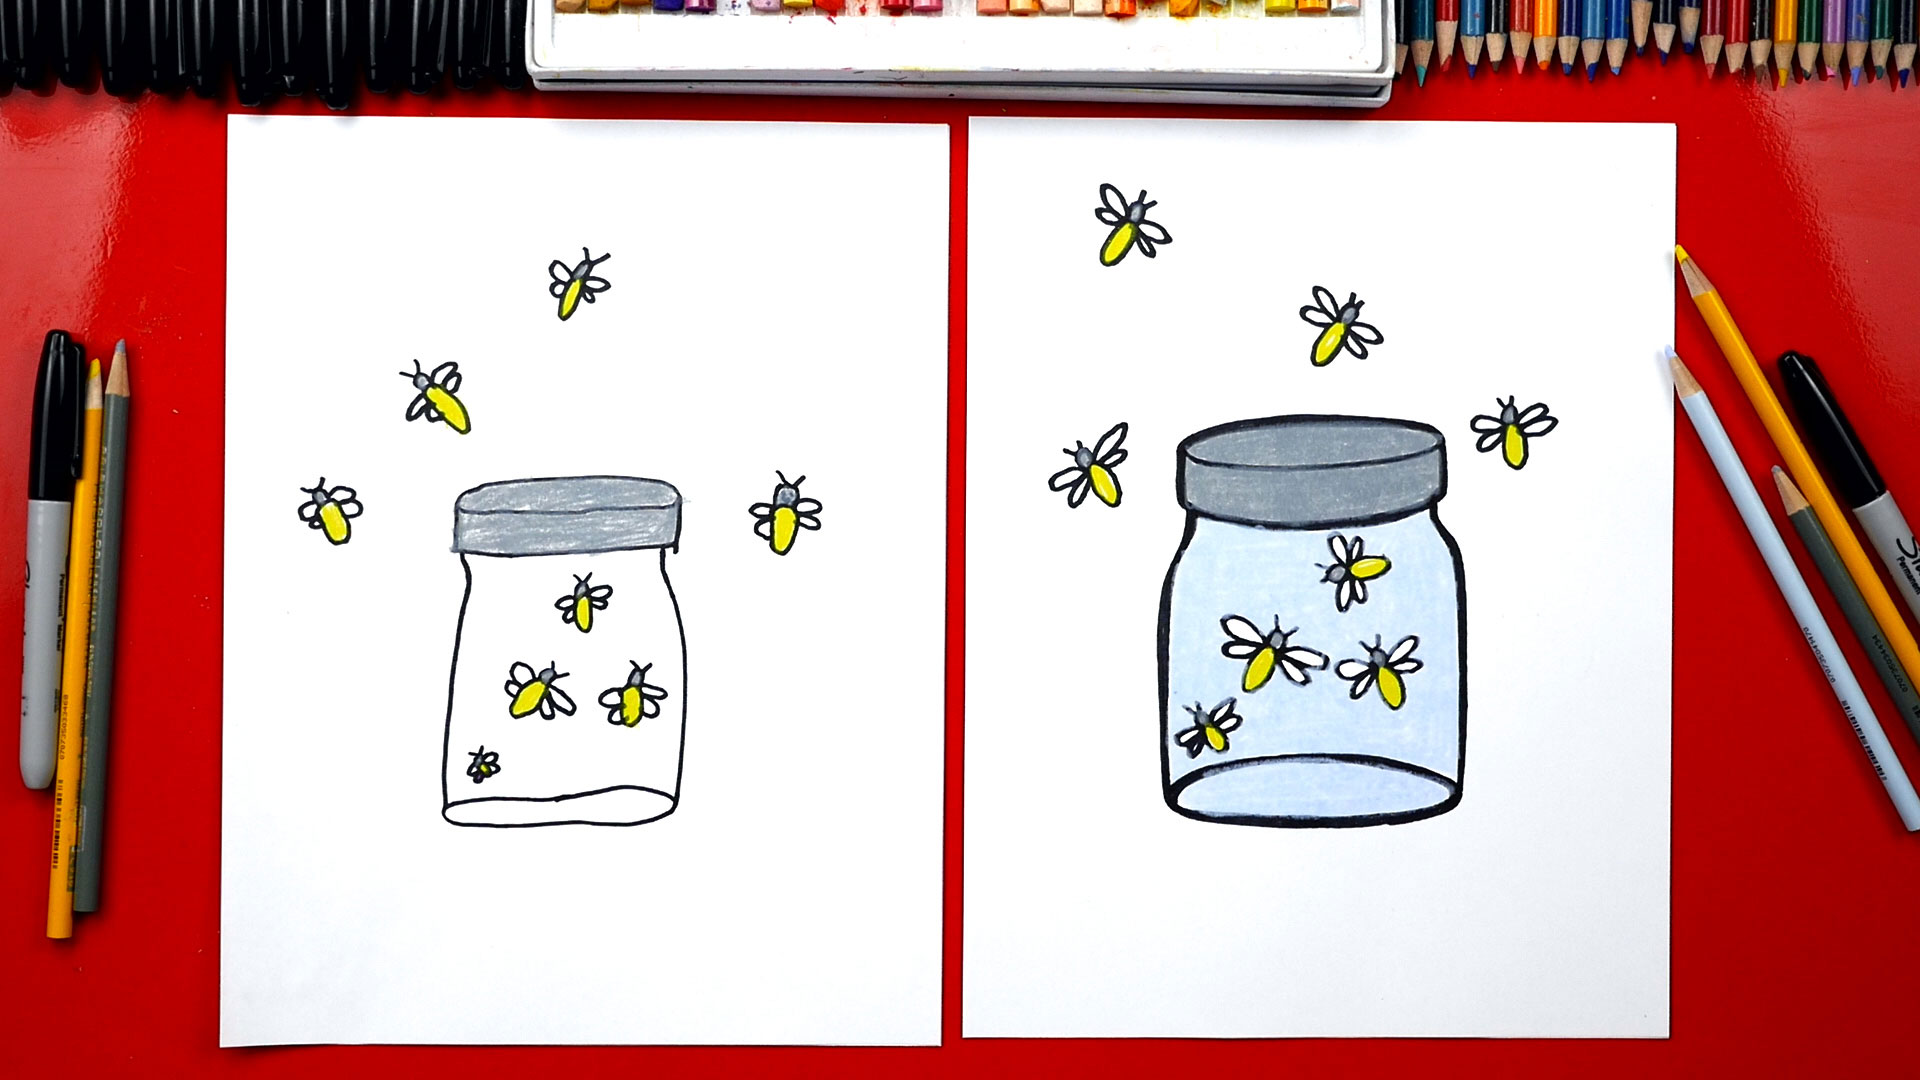 Firefly Jar Art How To Draw Fireflies In A Jar Art For Kids Hub